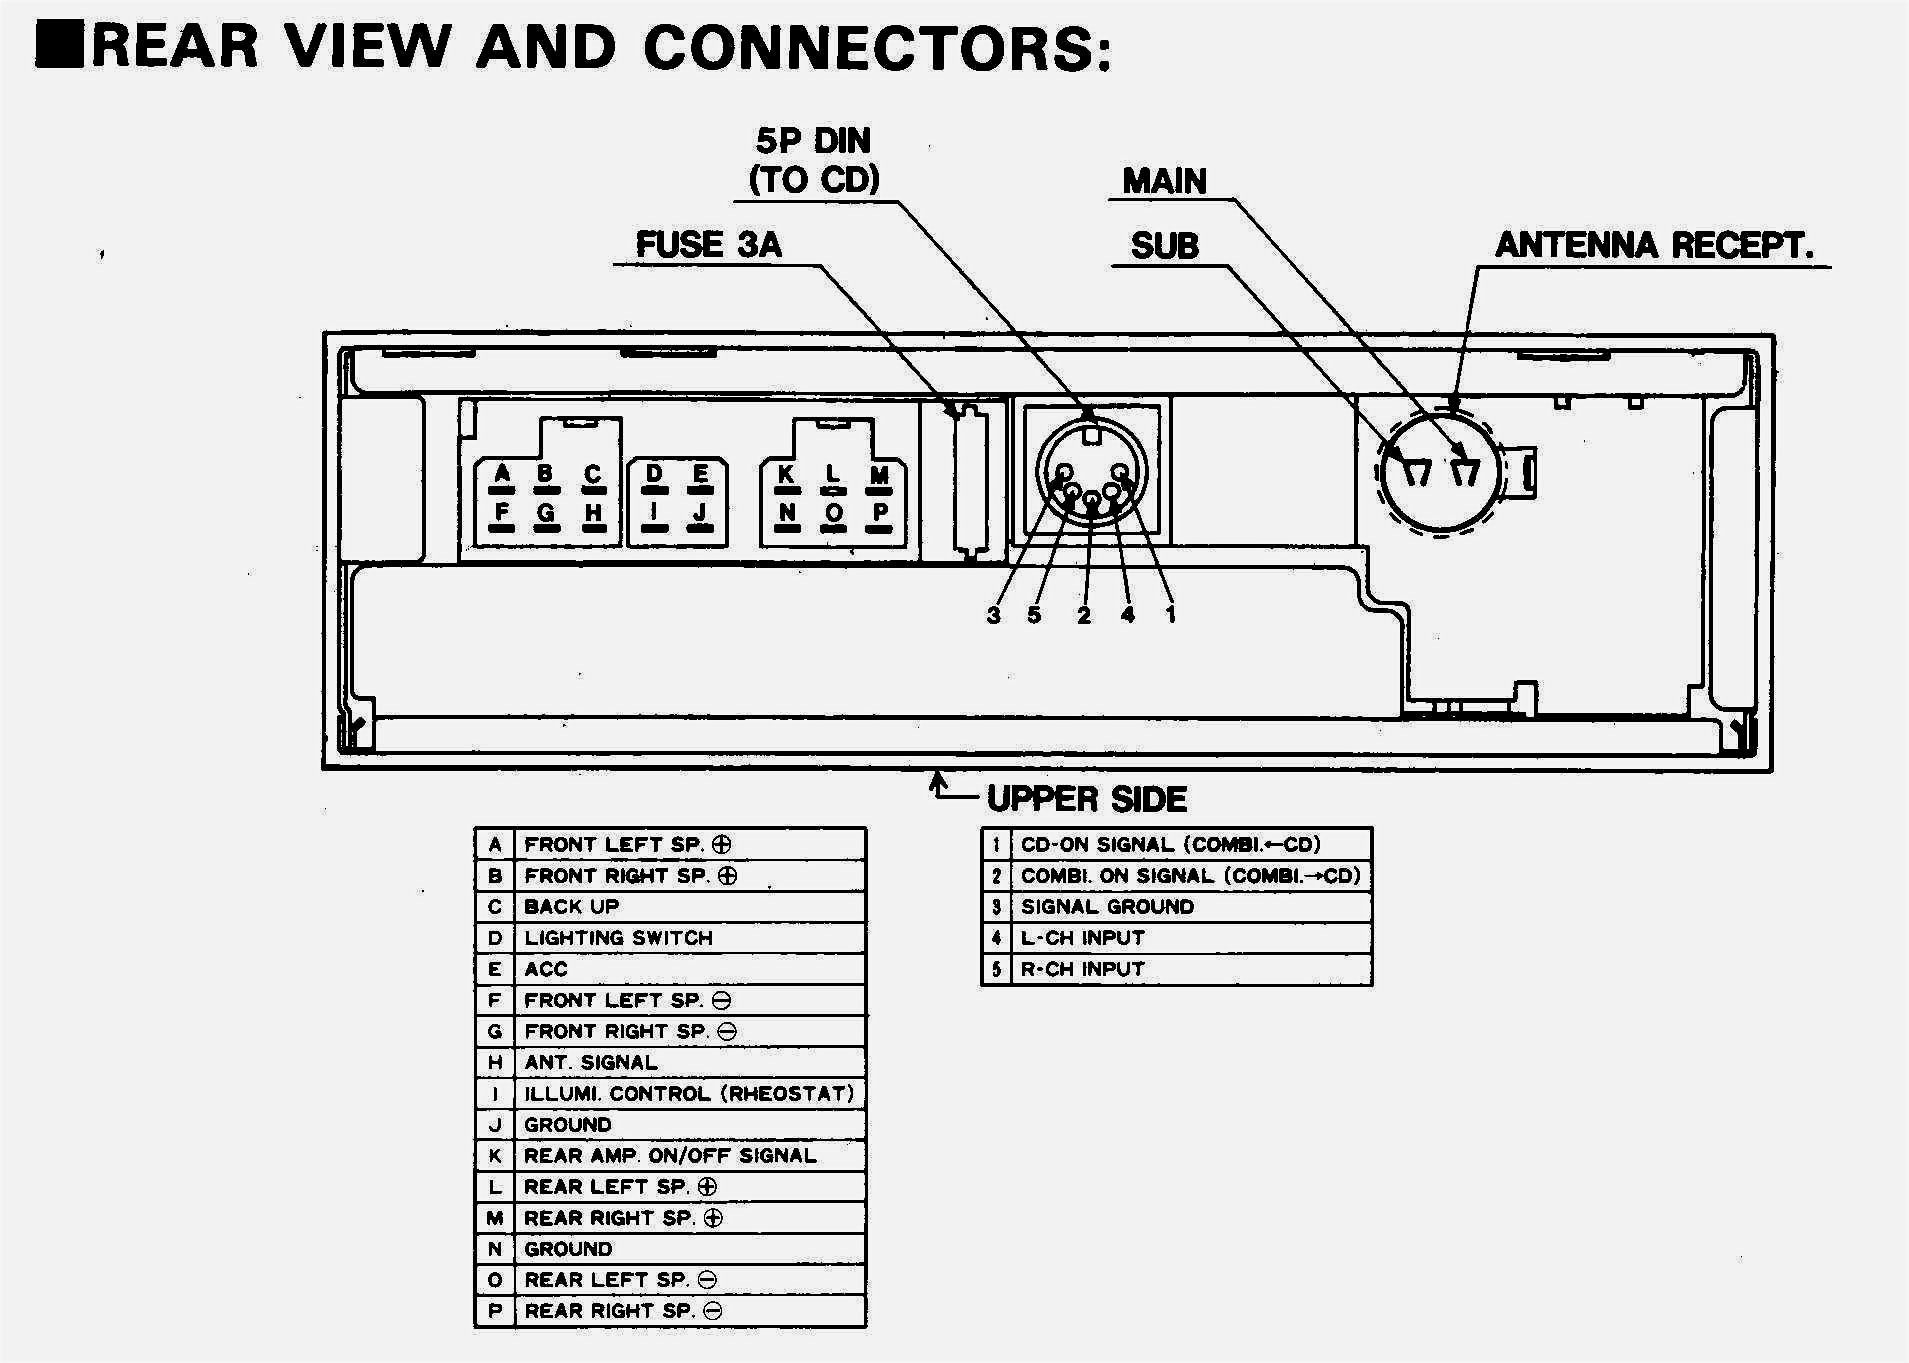 Unique Electrical Wiring Diagram Sample Free Diagram Wiringdiagram Diagramming Diagramm Visuals Visualisation Gra Car Stereo Car Stereo Speakers Diagram